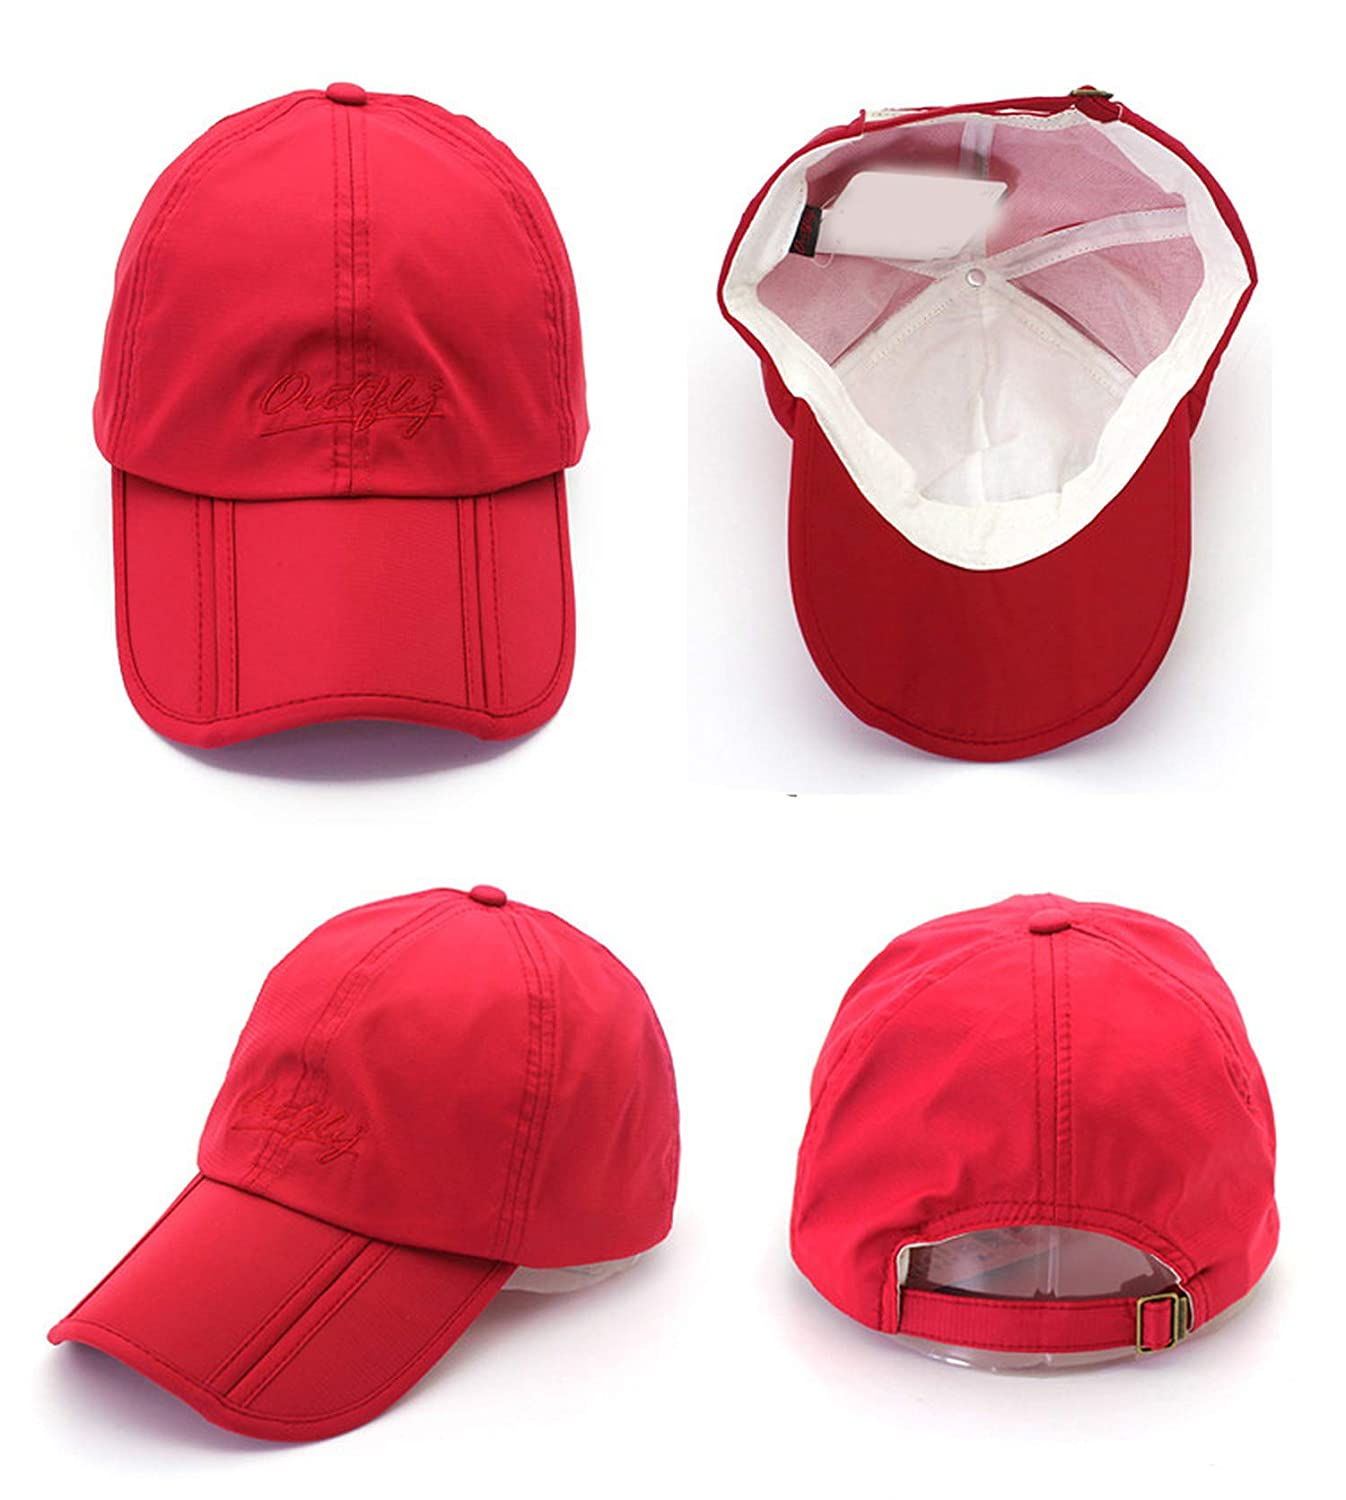 Sun hat Cap visera Cap Outdoor Foldable Quick Dry Visor Cap Fishing hat Men Sports Duck Cap at Amazon Mens Clothing store: